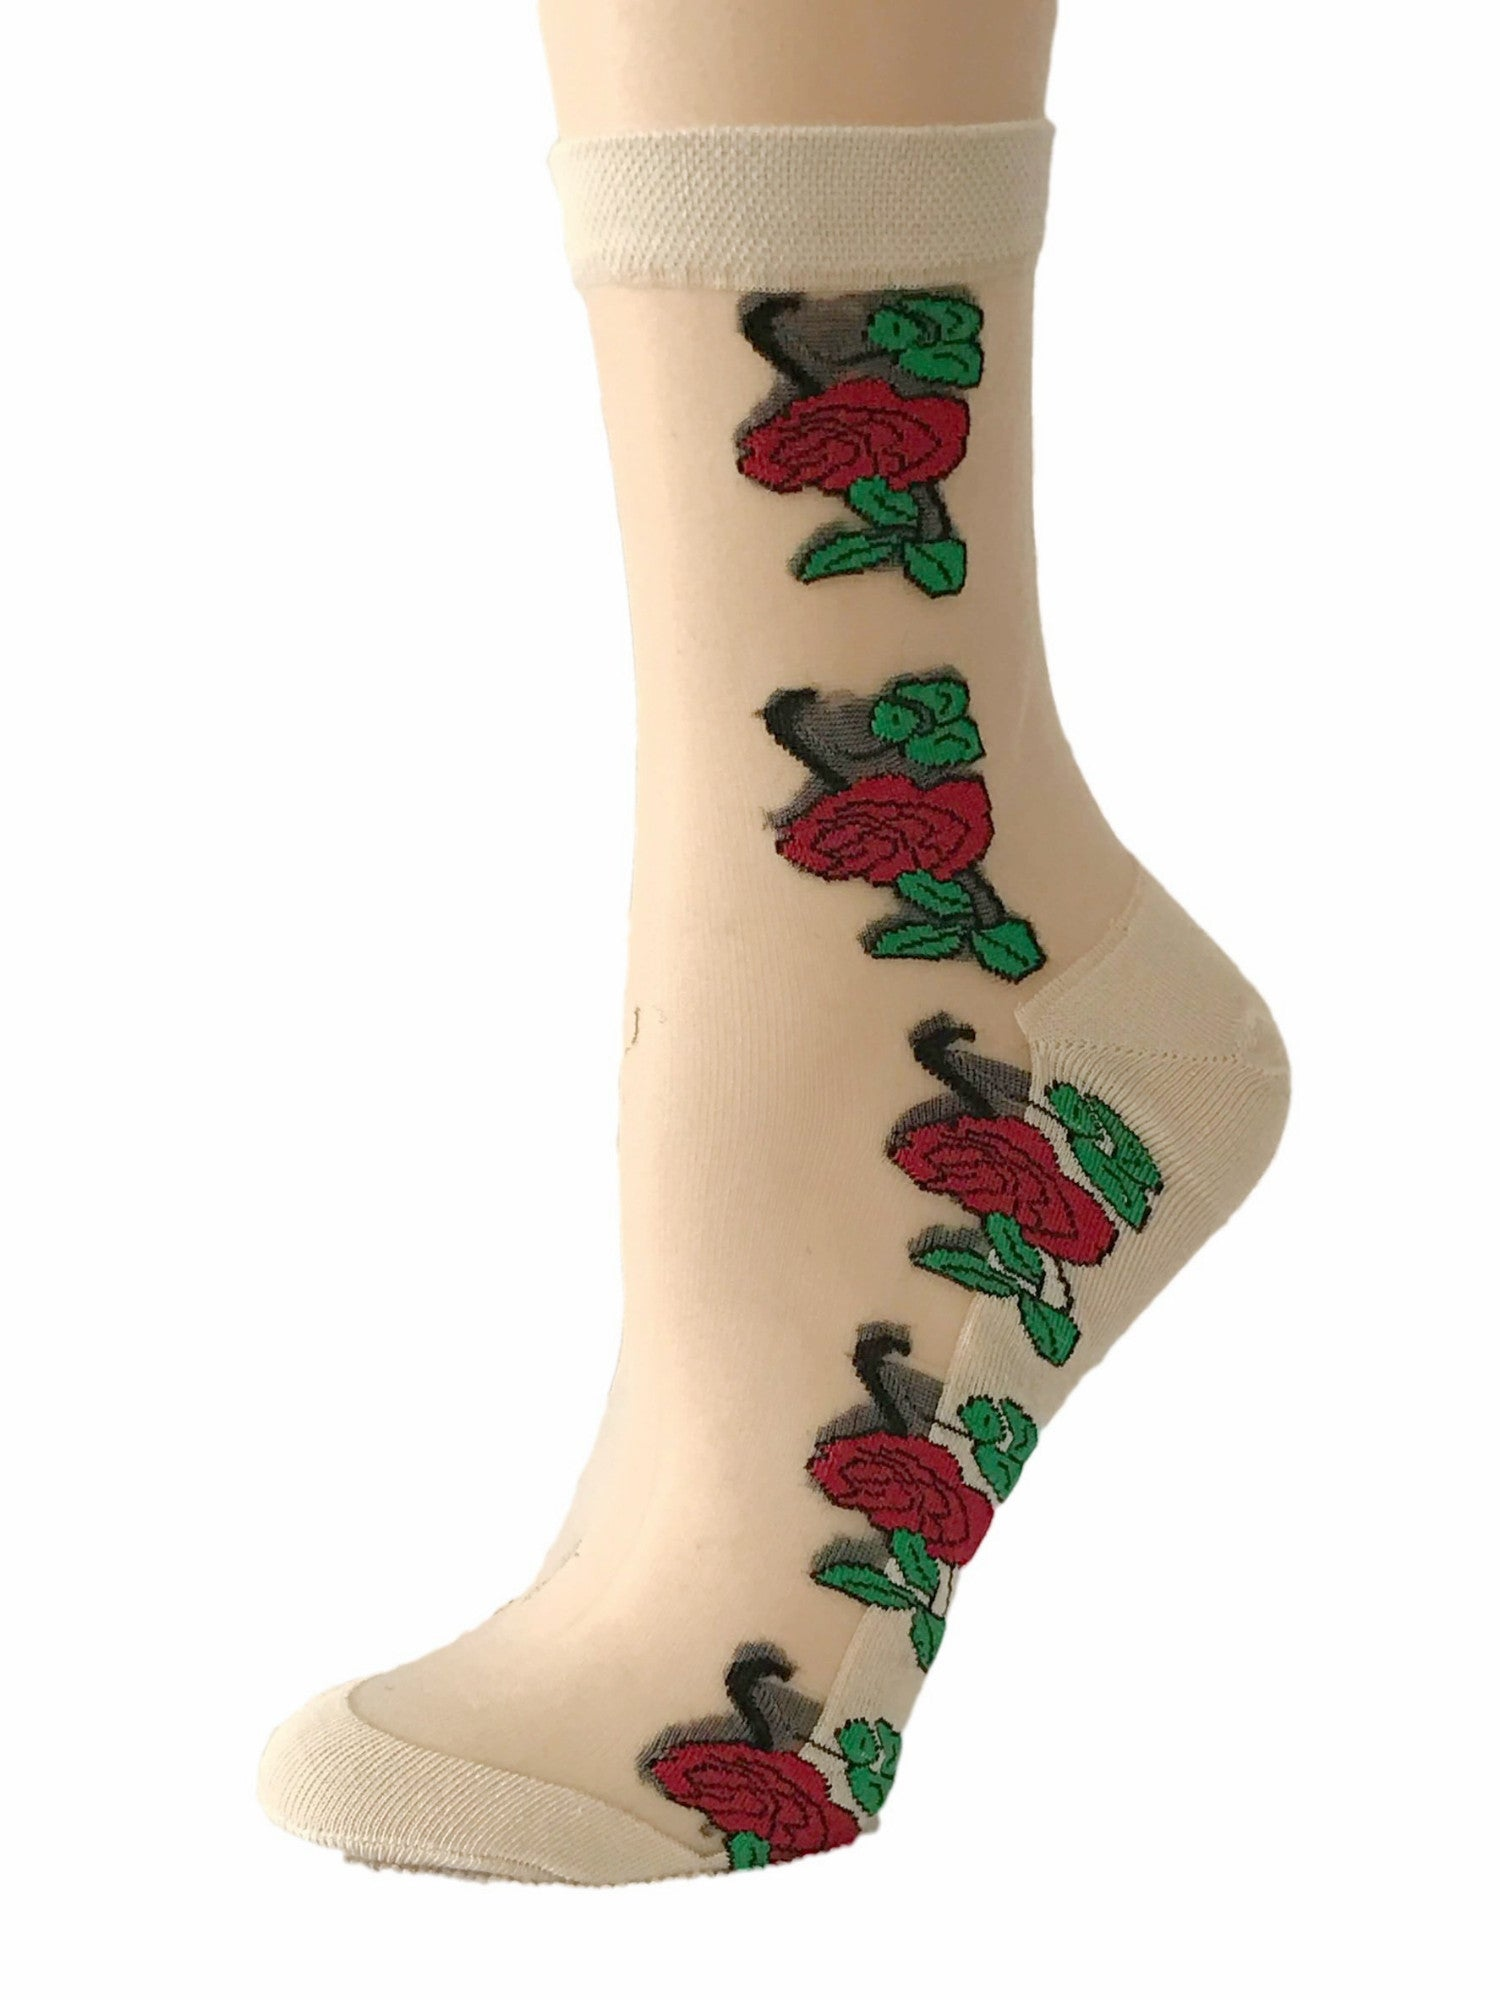 Red Roses Sheer Socks - Global Trendz Fashion®